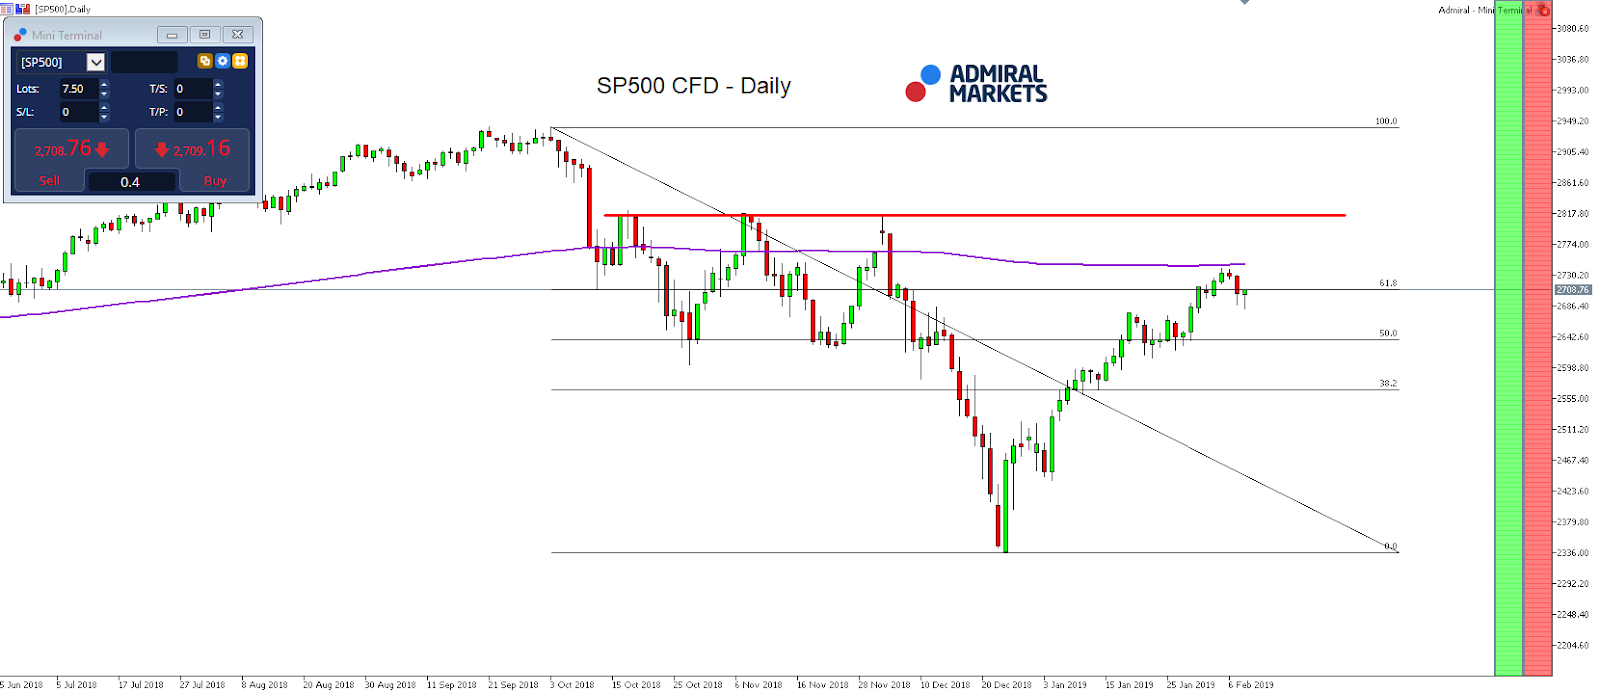 S&P500 CFD daily chart